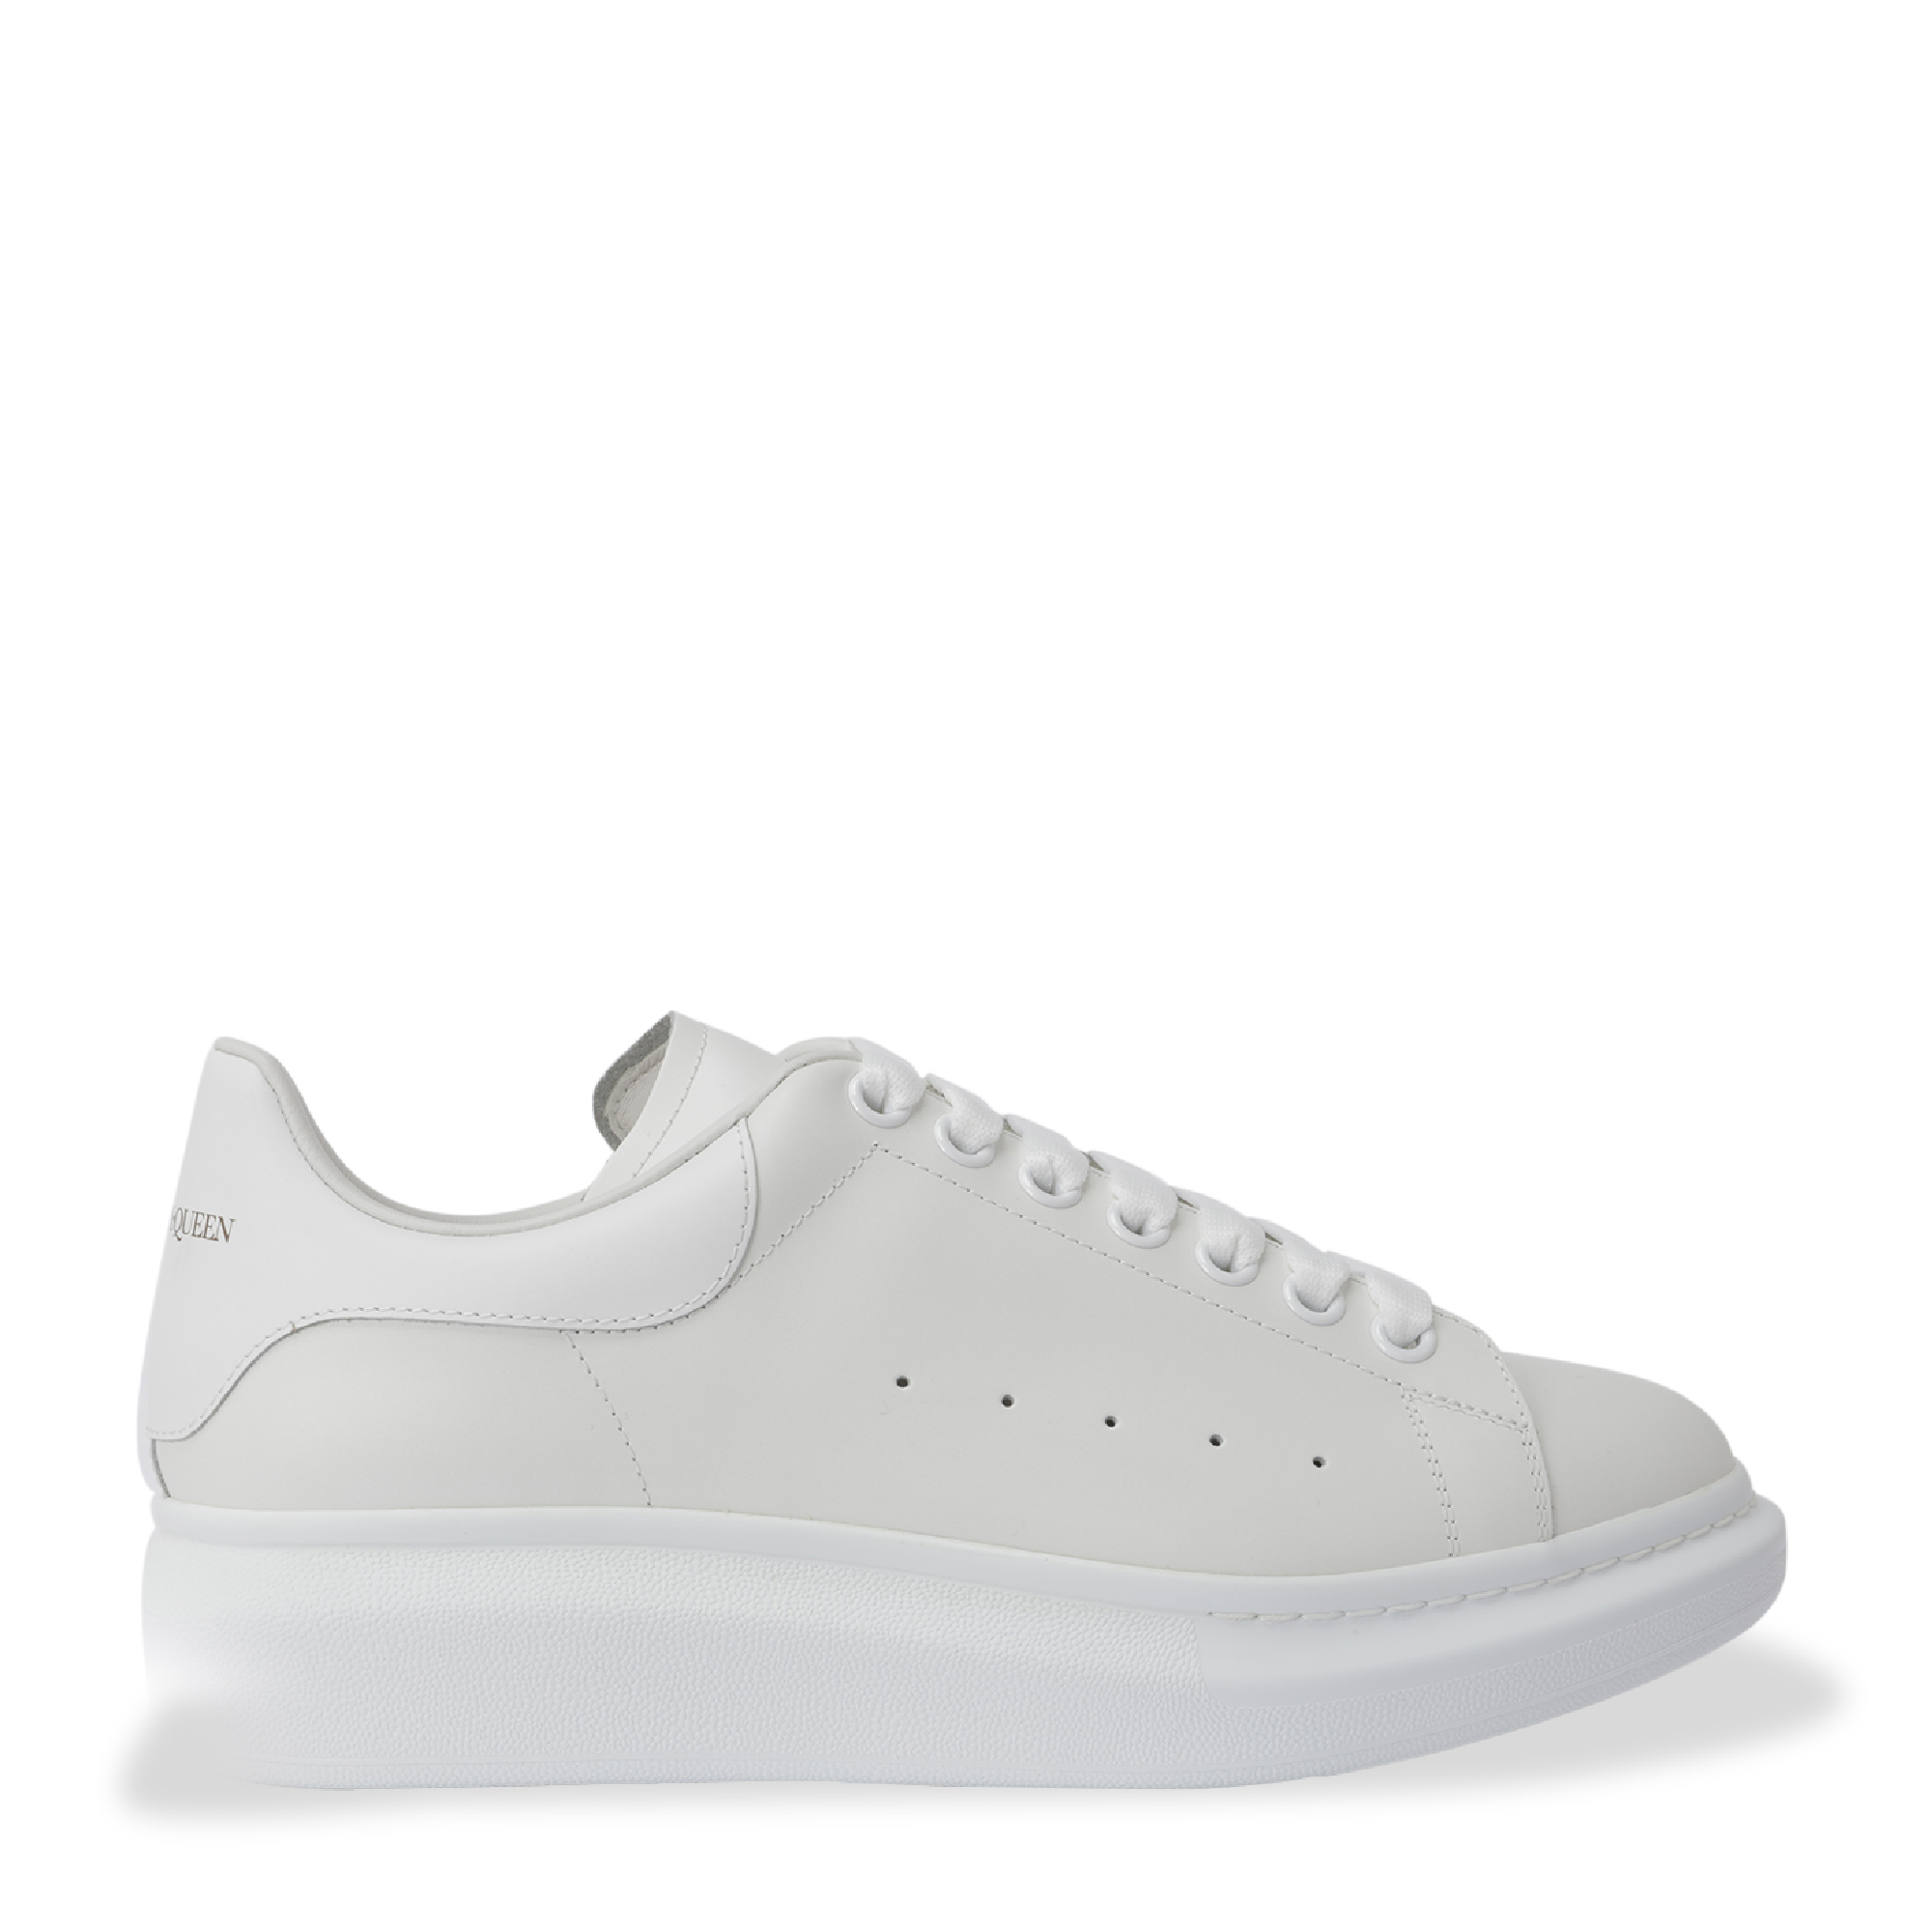 Oversized leather sneakers